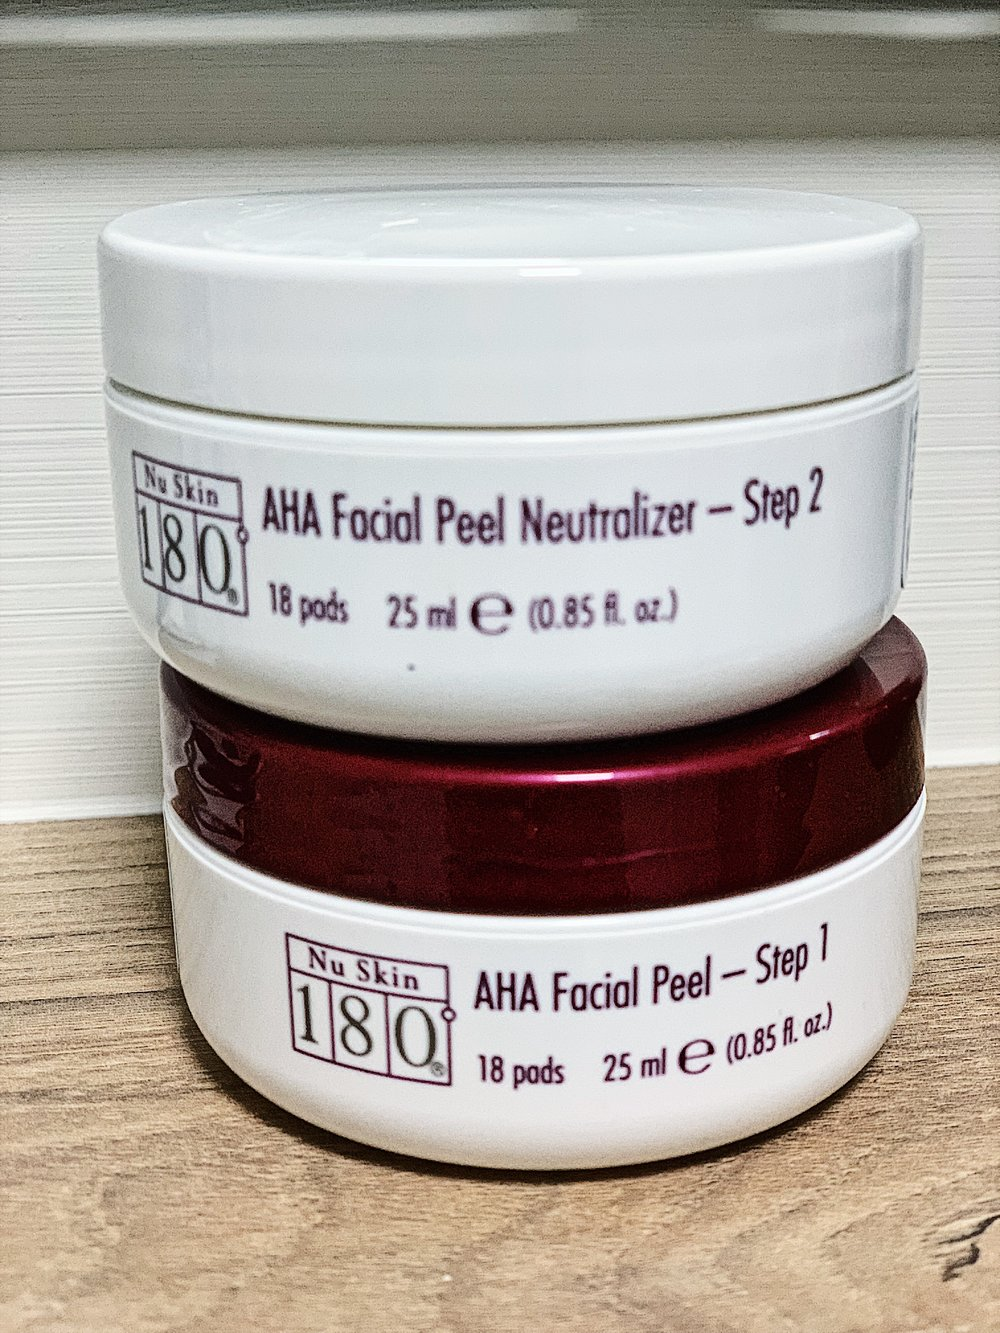 - PRICE: R850.00CONTENT: 18 TREATMENTSP.S. MY AFTER PICTURE IS AFTER 12 TREATMENTSSMS/Whatsapp on 0827462200 OR Email me on ana@momfashioned.com to place your orders.